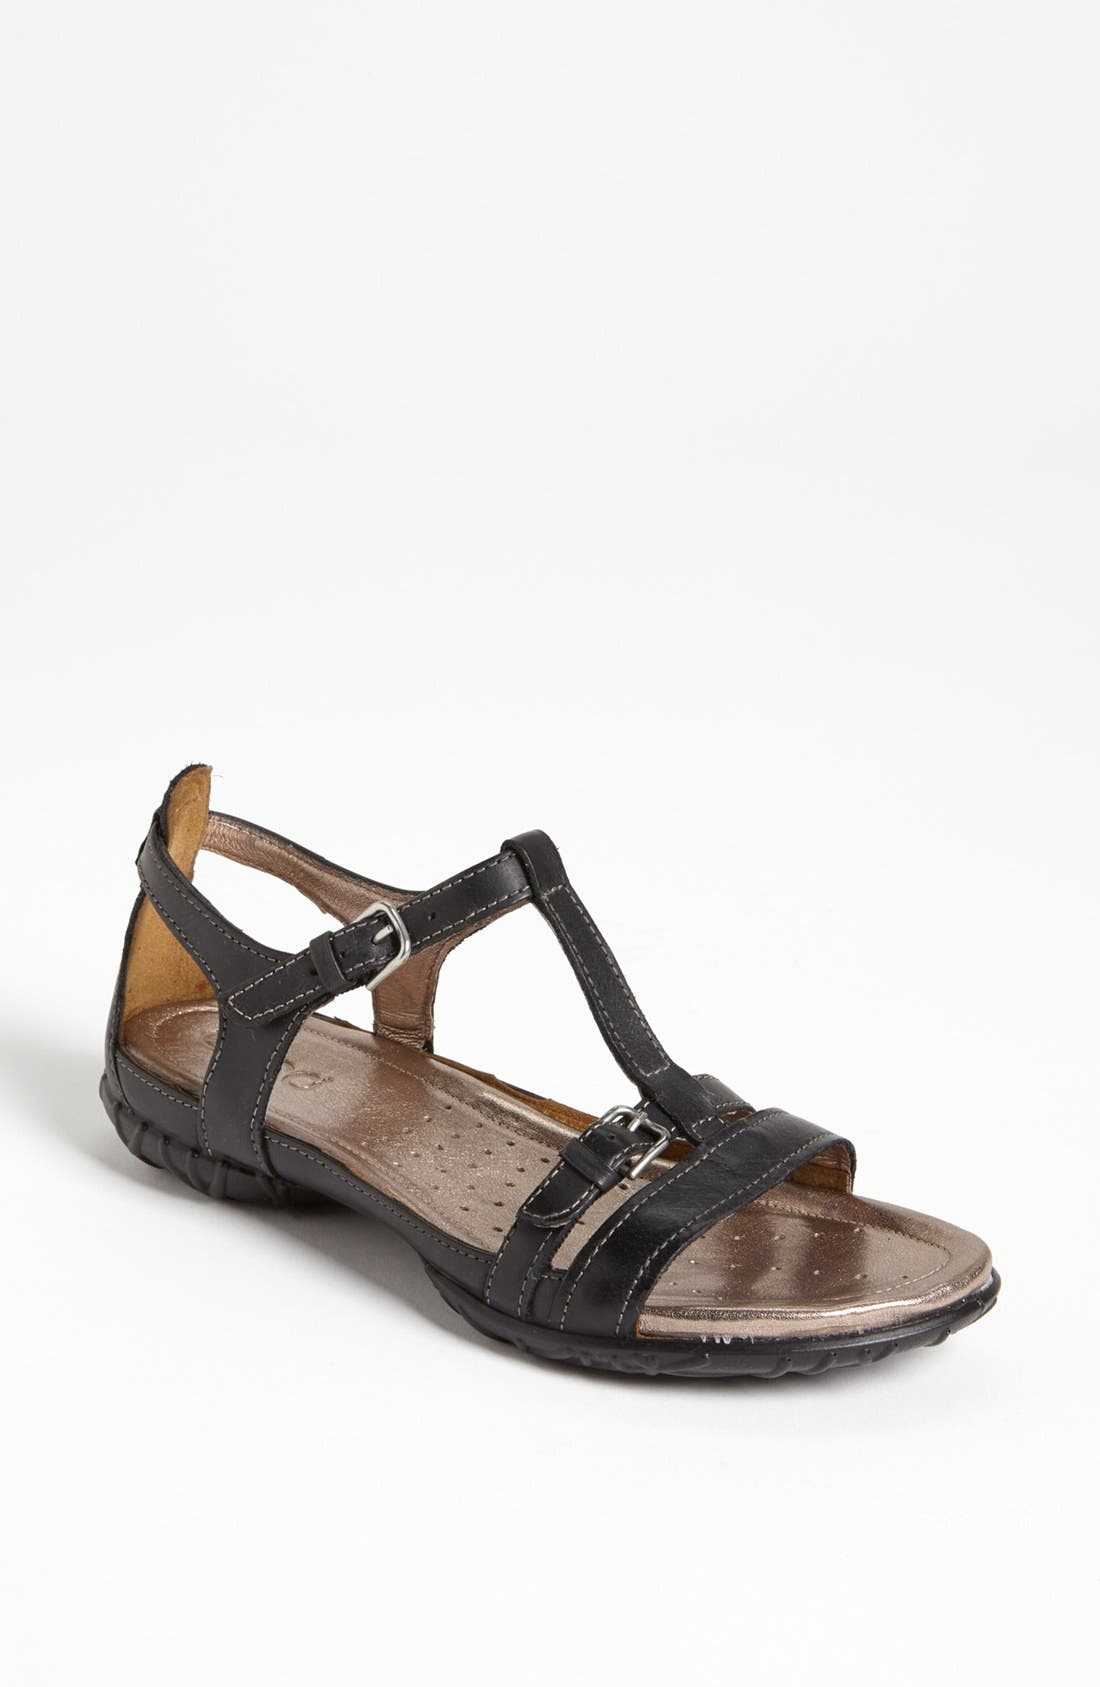 Alternate Image 1 Selected - ECCO 'Groove' Sandal (Special Purchase)